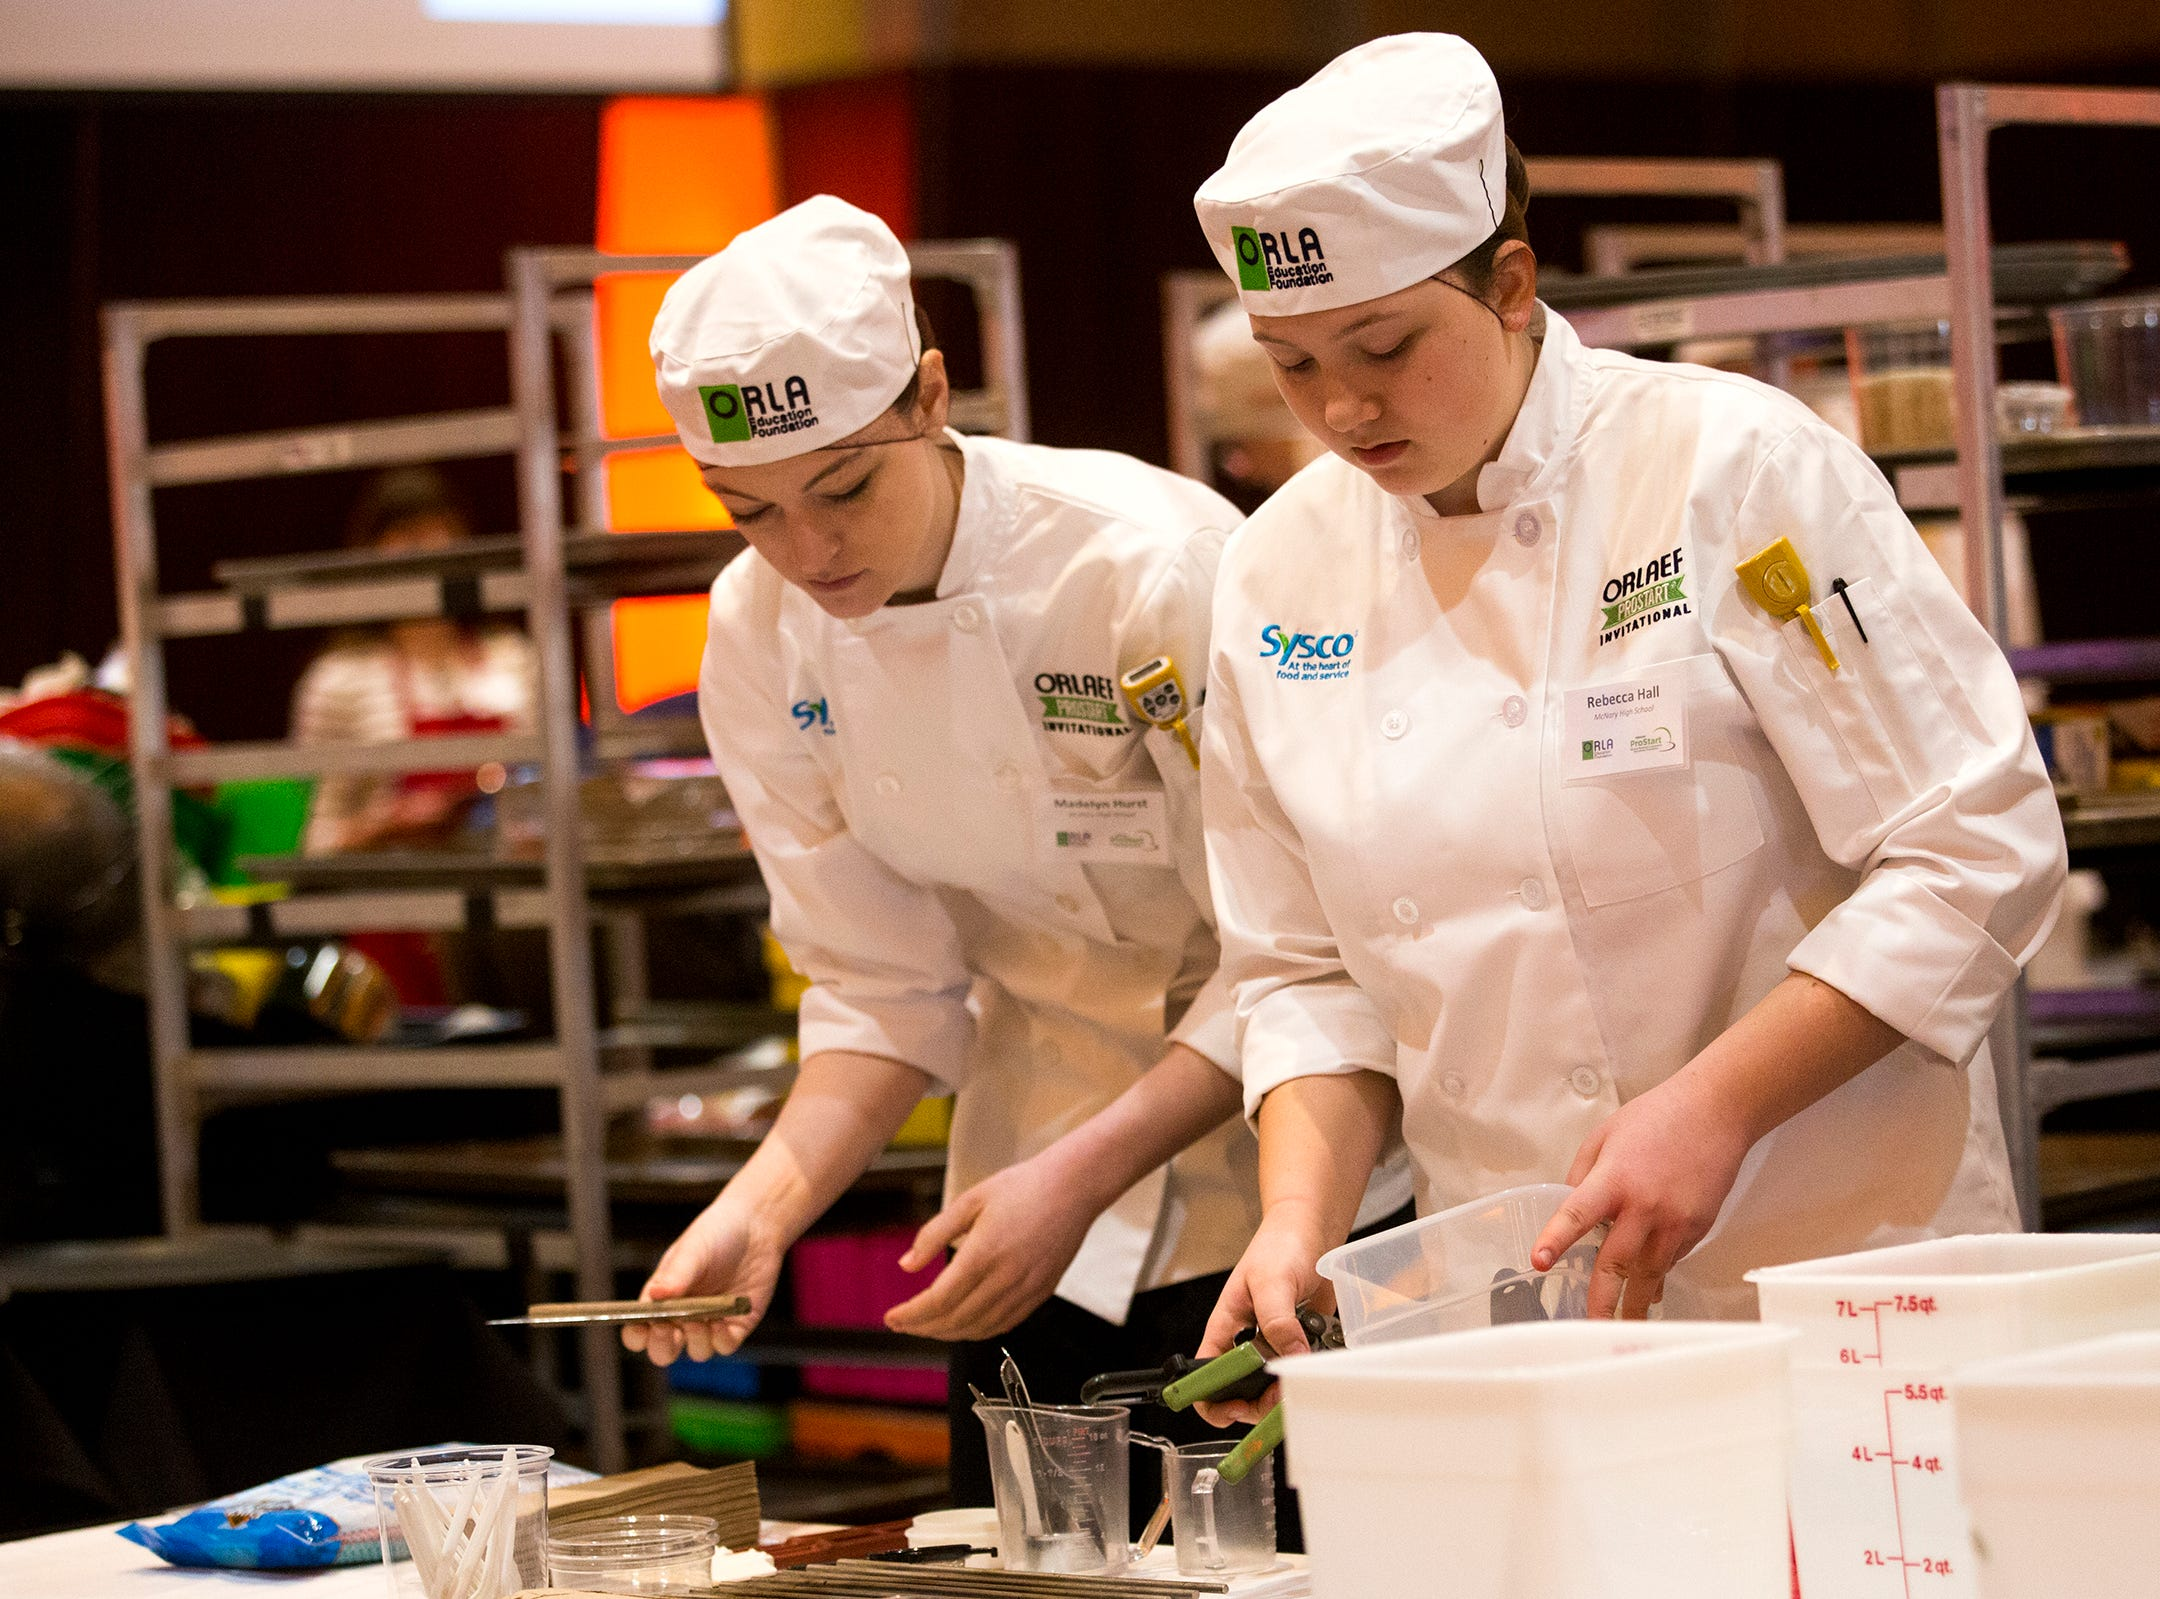 McNary's students Madelyn Hurst and Rebecca Hall set up their working area during the ORLAEF's ProStart Invitational, a statewide high school culinary competition, at the Salem Convention Center on March 18, 2019.